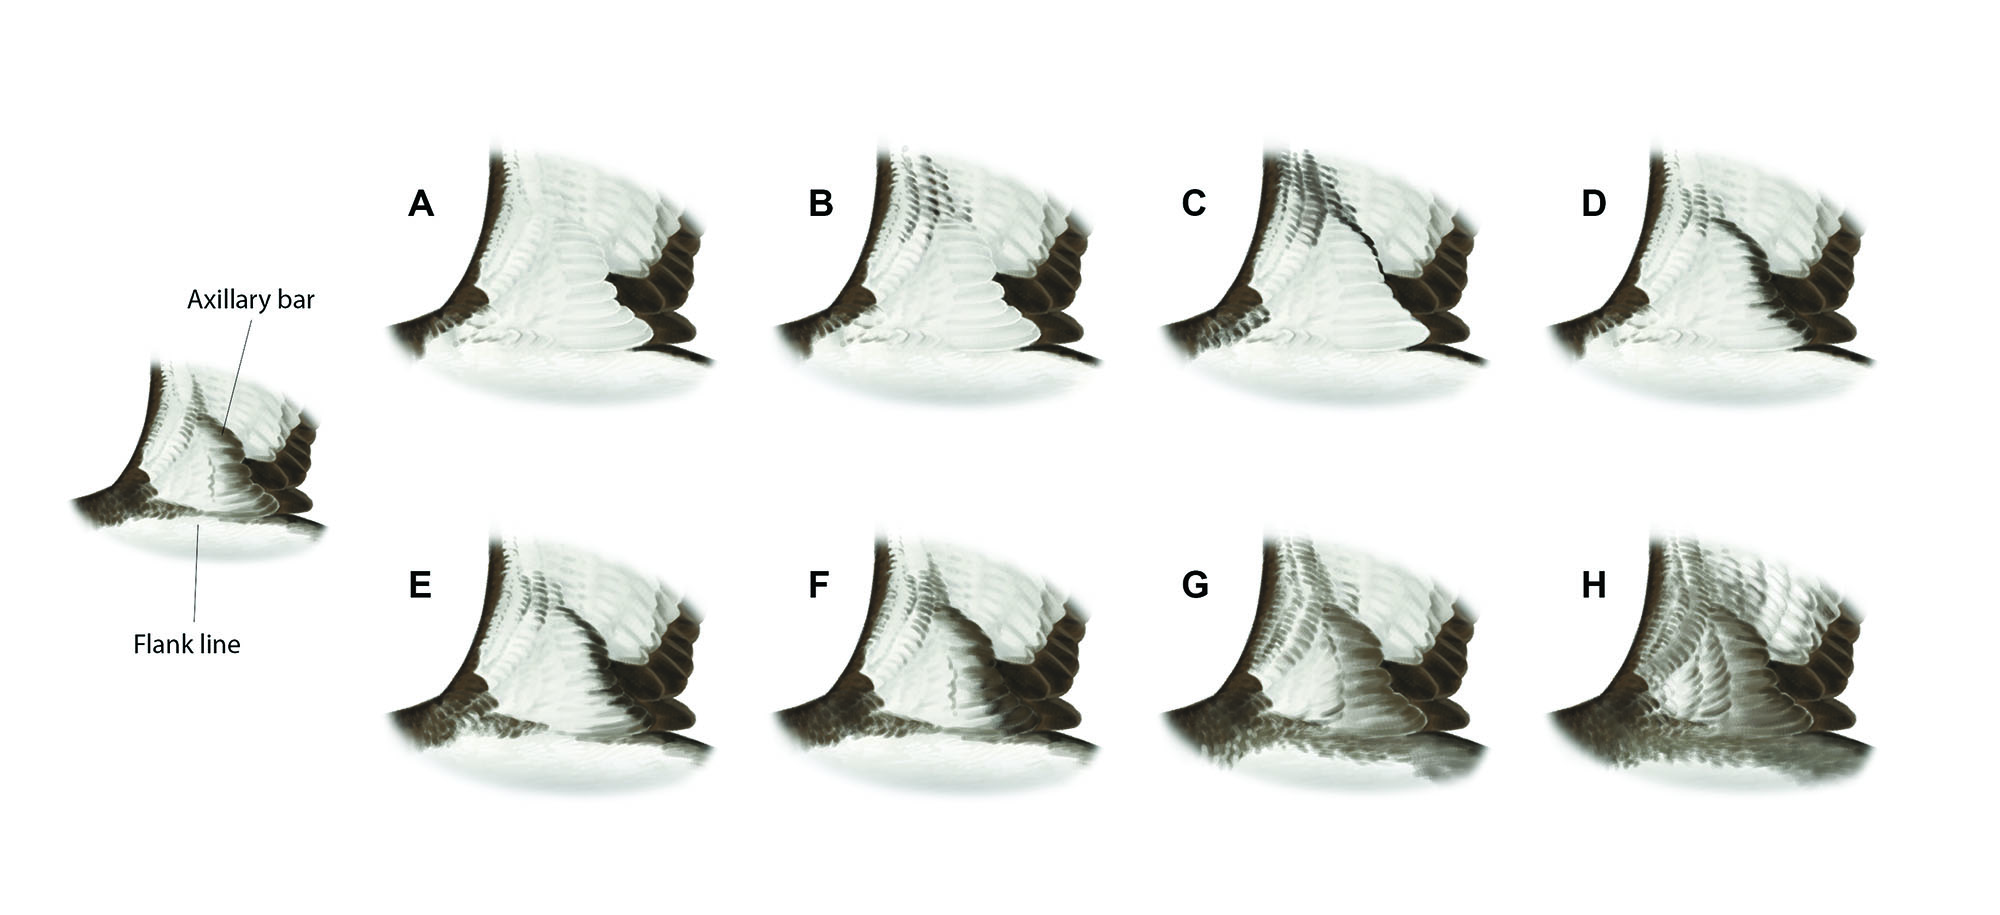 A clean underwing (A) is the most commonly shown pattern in Manx Shearwater, but about a third of birds show diffuse dark marks around the 'wrist' area (B). Rarely (<6%), Manx Shearwater may show a dark diagonal axillary bar (C). This differs from the typical pattern of Yelkouan Shearwater (D, E) in being broadest towards the 'wrist' (narrowest towards the wrist in Yelkouan). The diagonal bar is absent in c. 20% of Yelkouans. The flanks under the wing are clean in c. 10% of Yelkouan (D) but more commonly (60%) birds show a fine line along the upper flank (E), sometimes broken in the centre. In c. 5% of Yelkouan the flank line is thicker, though still with some narrowing at the centre (F); typically these individuals also show a relatively thick diagonal bar and a dirtier-looking underwing. A few Balearic Shearwaters show an underwing similar to 3f, although pale birds (3%) typically show a uniformly thick flank line (G). Most Balearics show a dirty underwing with a broad diagonal bar (H). Artwork by Martí Franch.